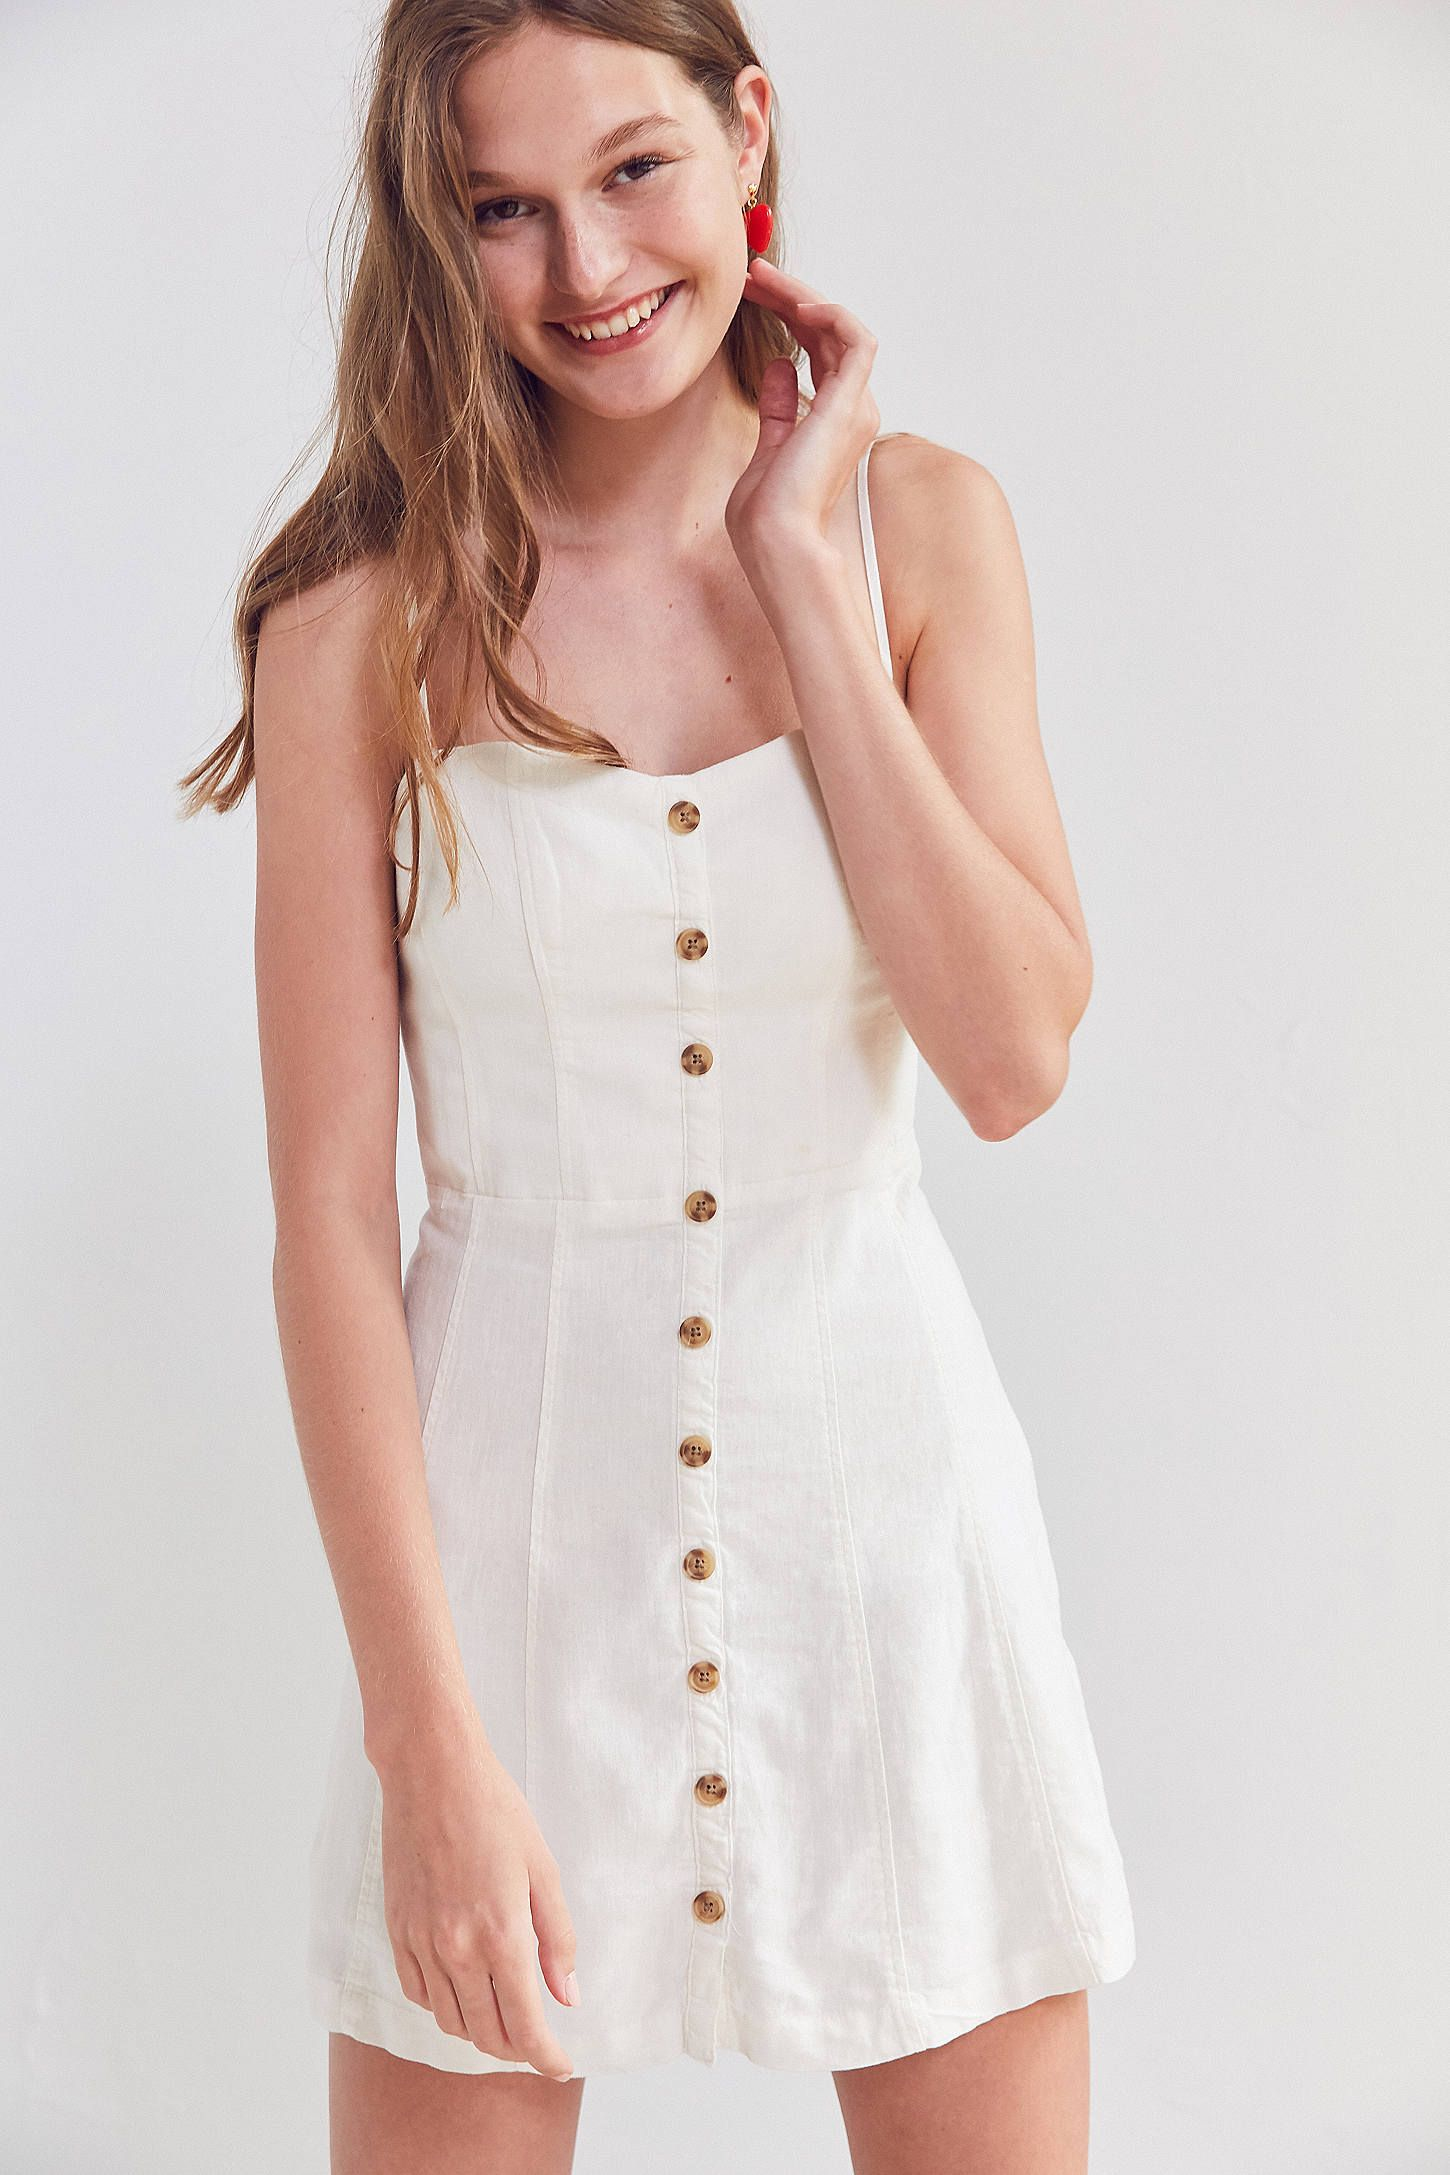 bd1fdbde6bc Shop Kimchi Blue Lilyanna Linen Button-Down Dress at Urban Outfitters  today. We carry all the latest styles